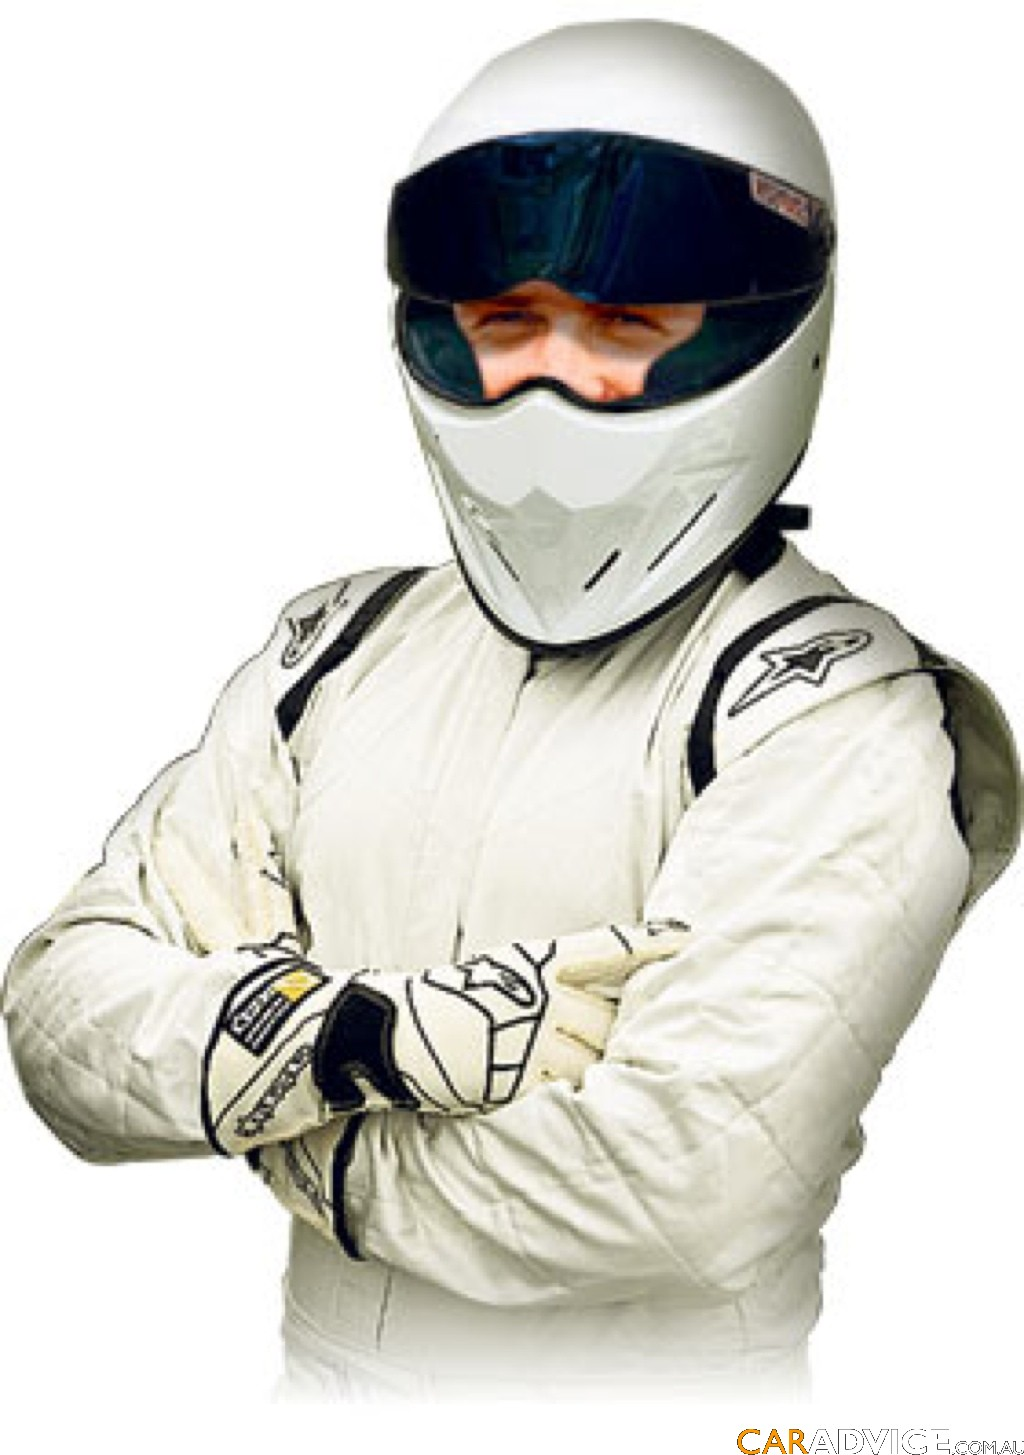 The Stig Revealed Photos